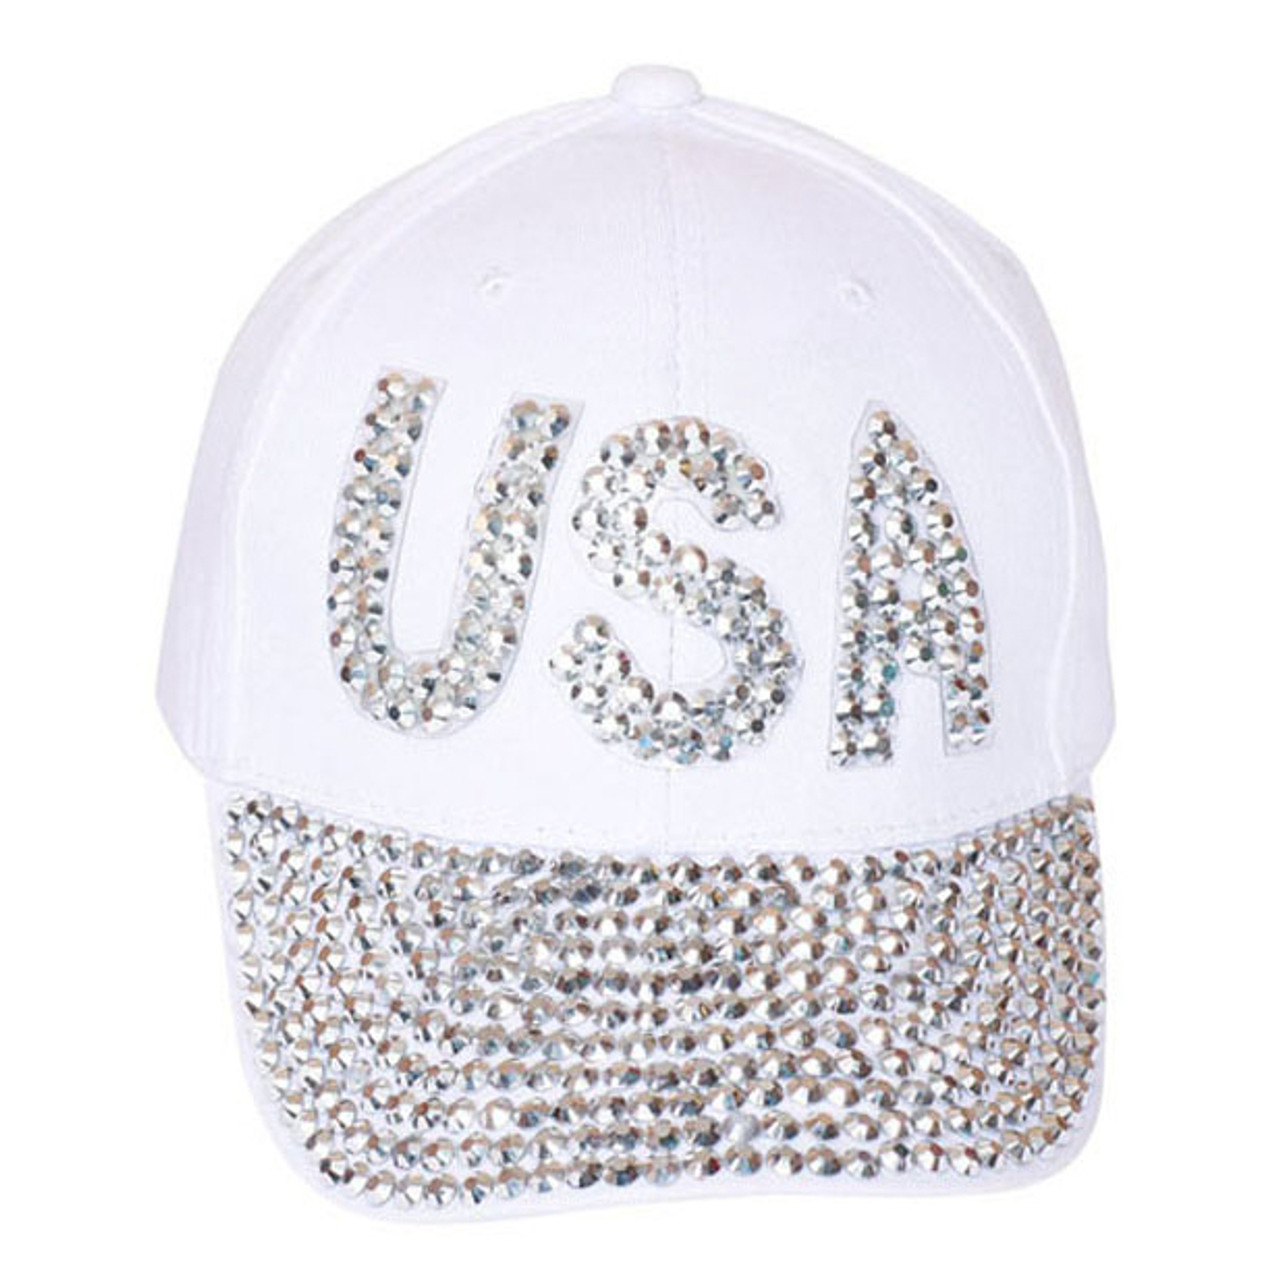 4e5524748 Something Special - USA Bedazzle Jewel Cap